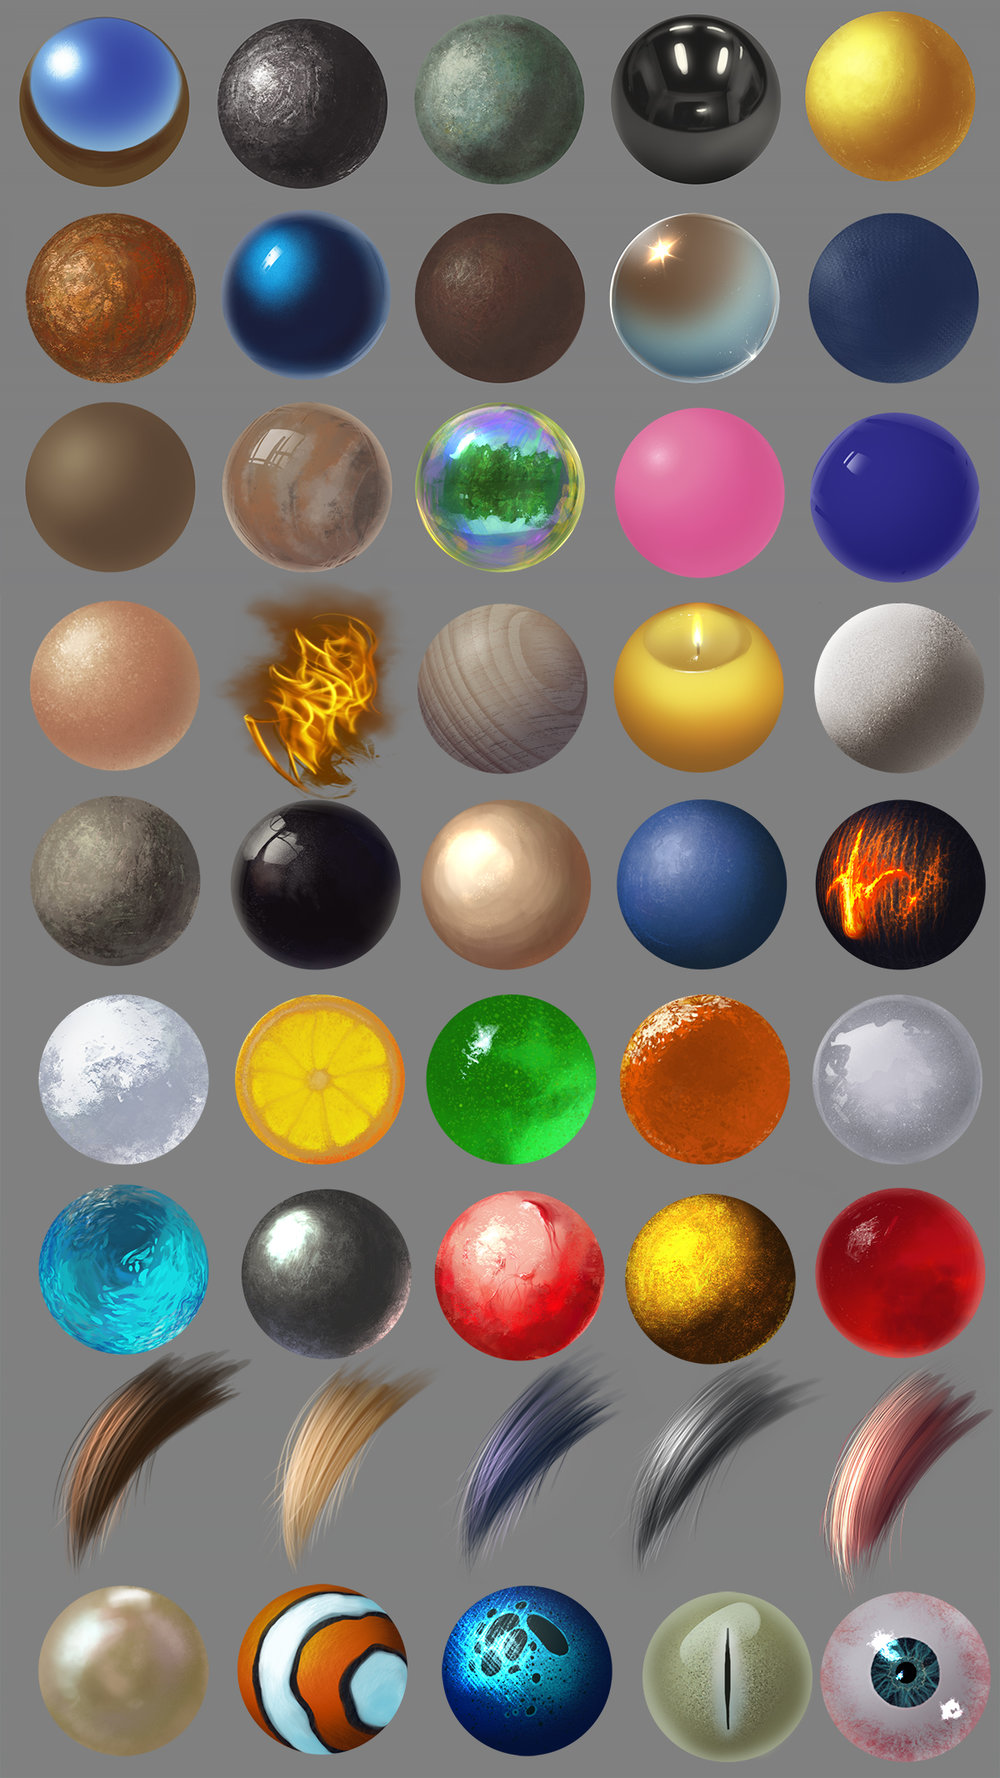 Practice at rendering different materials